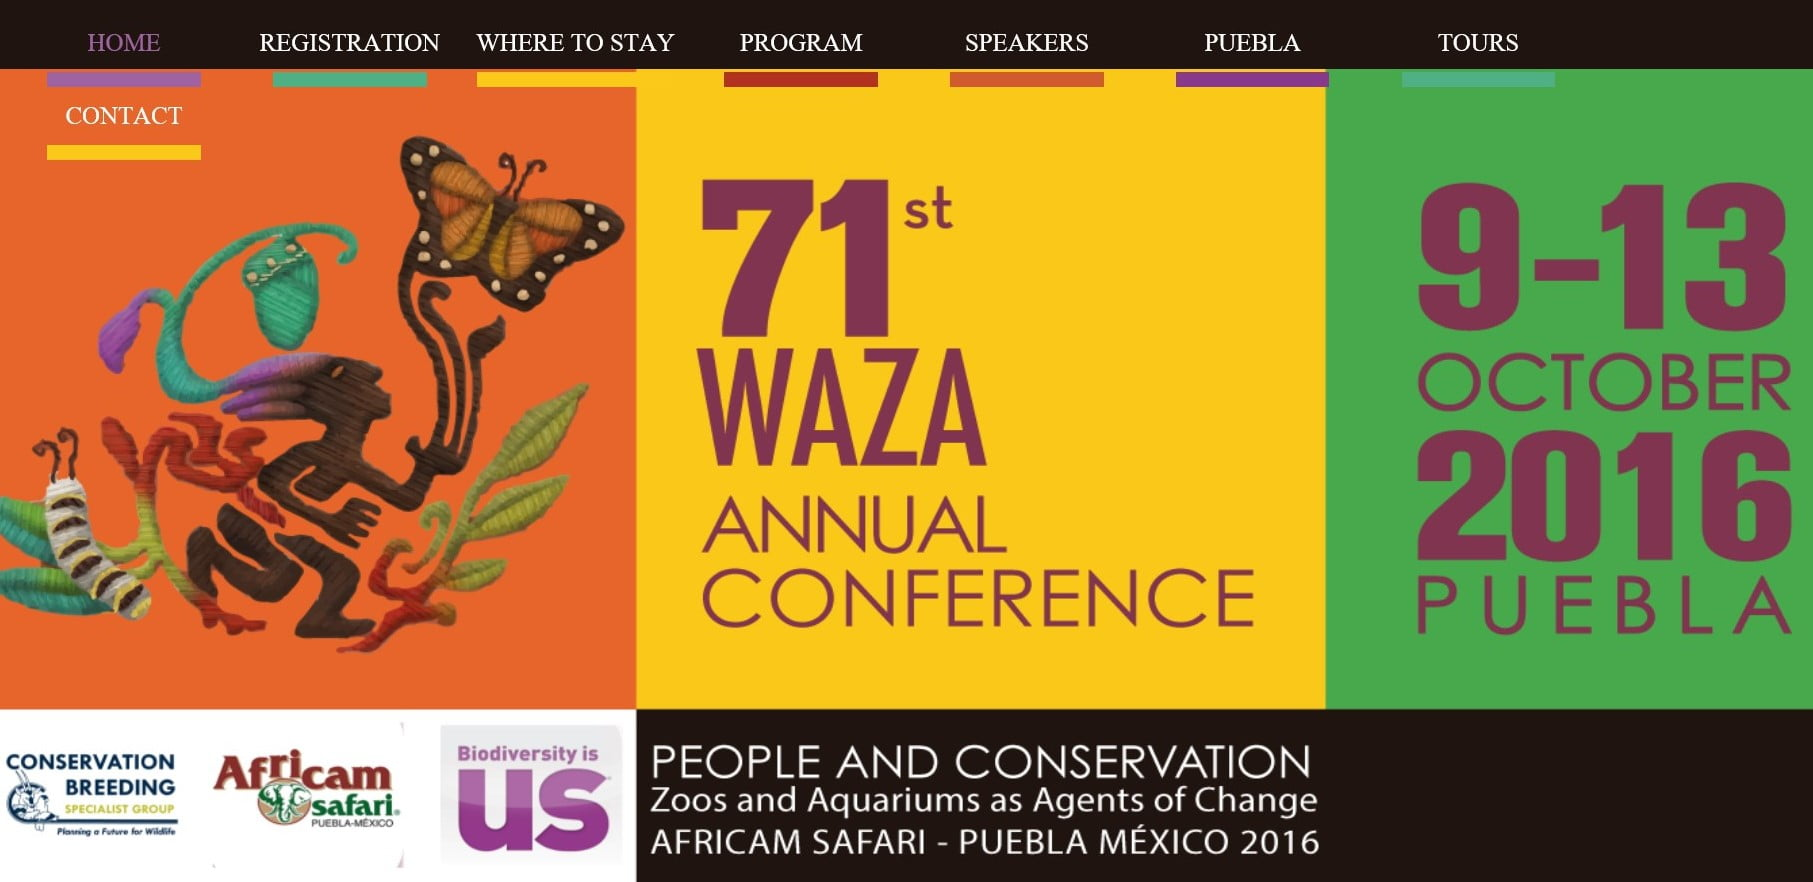 Photo of web page of WAZA annual conference